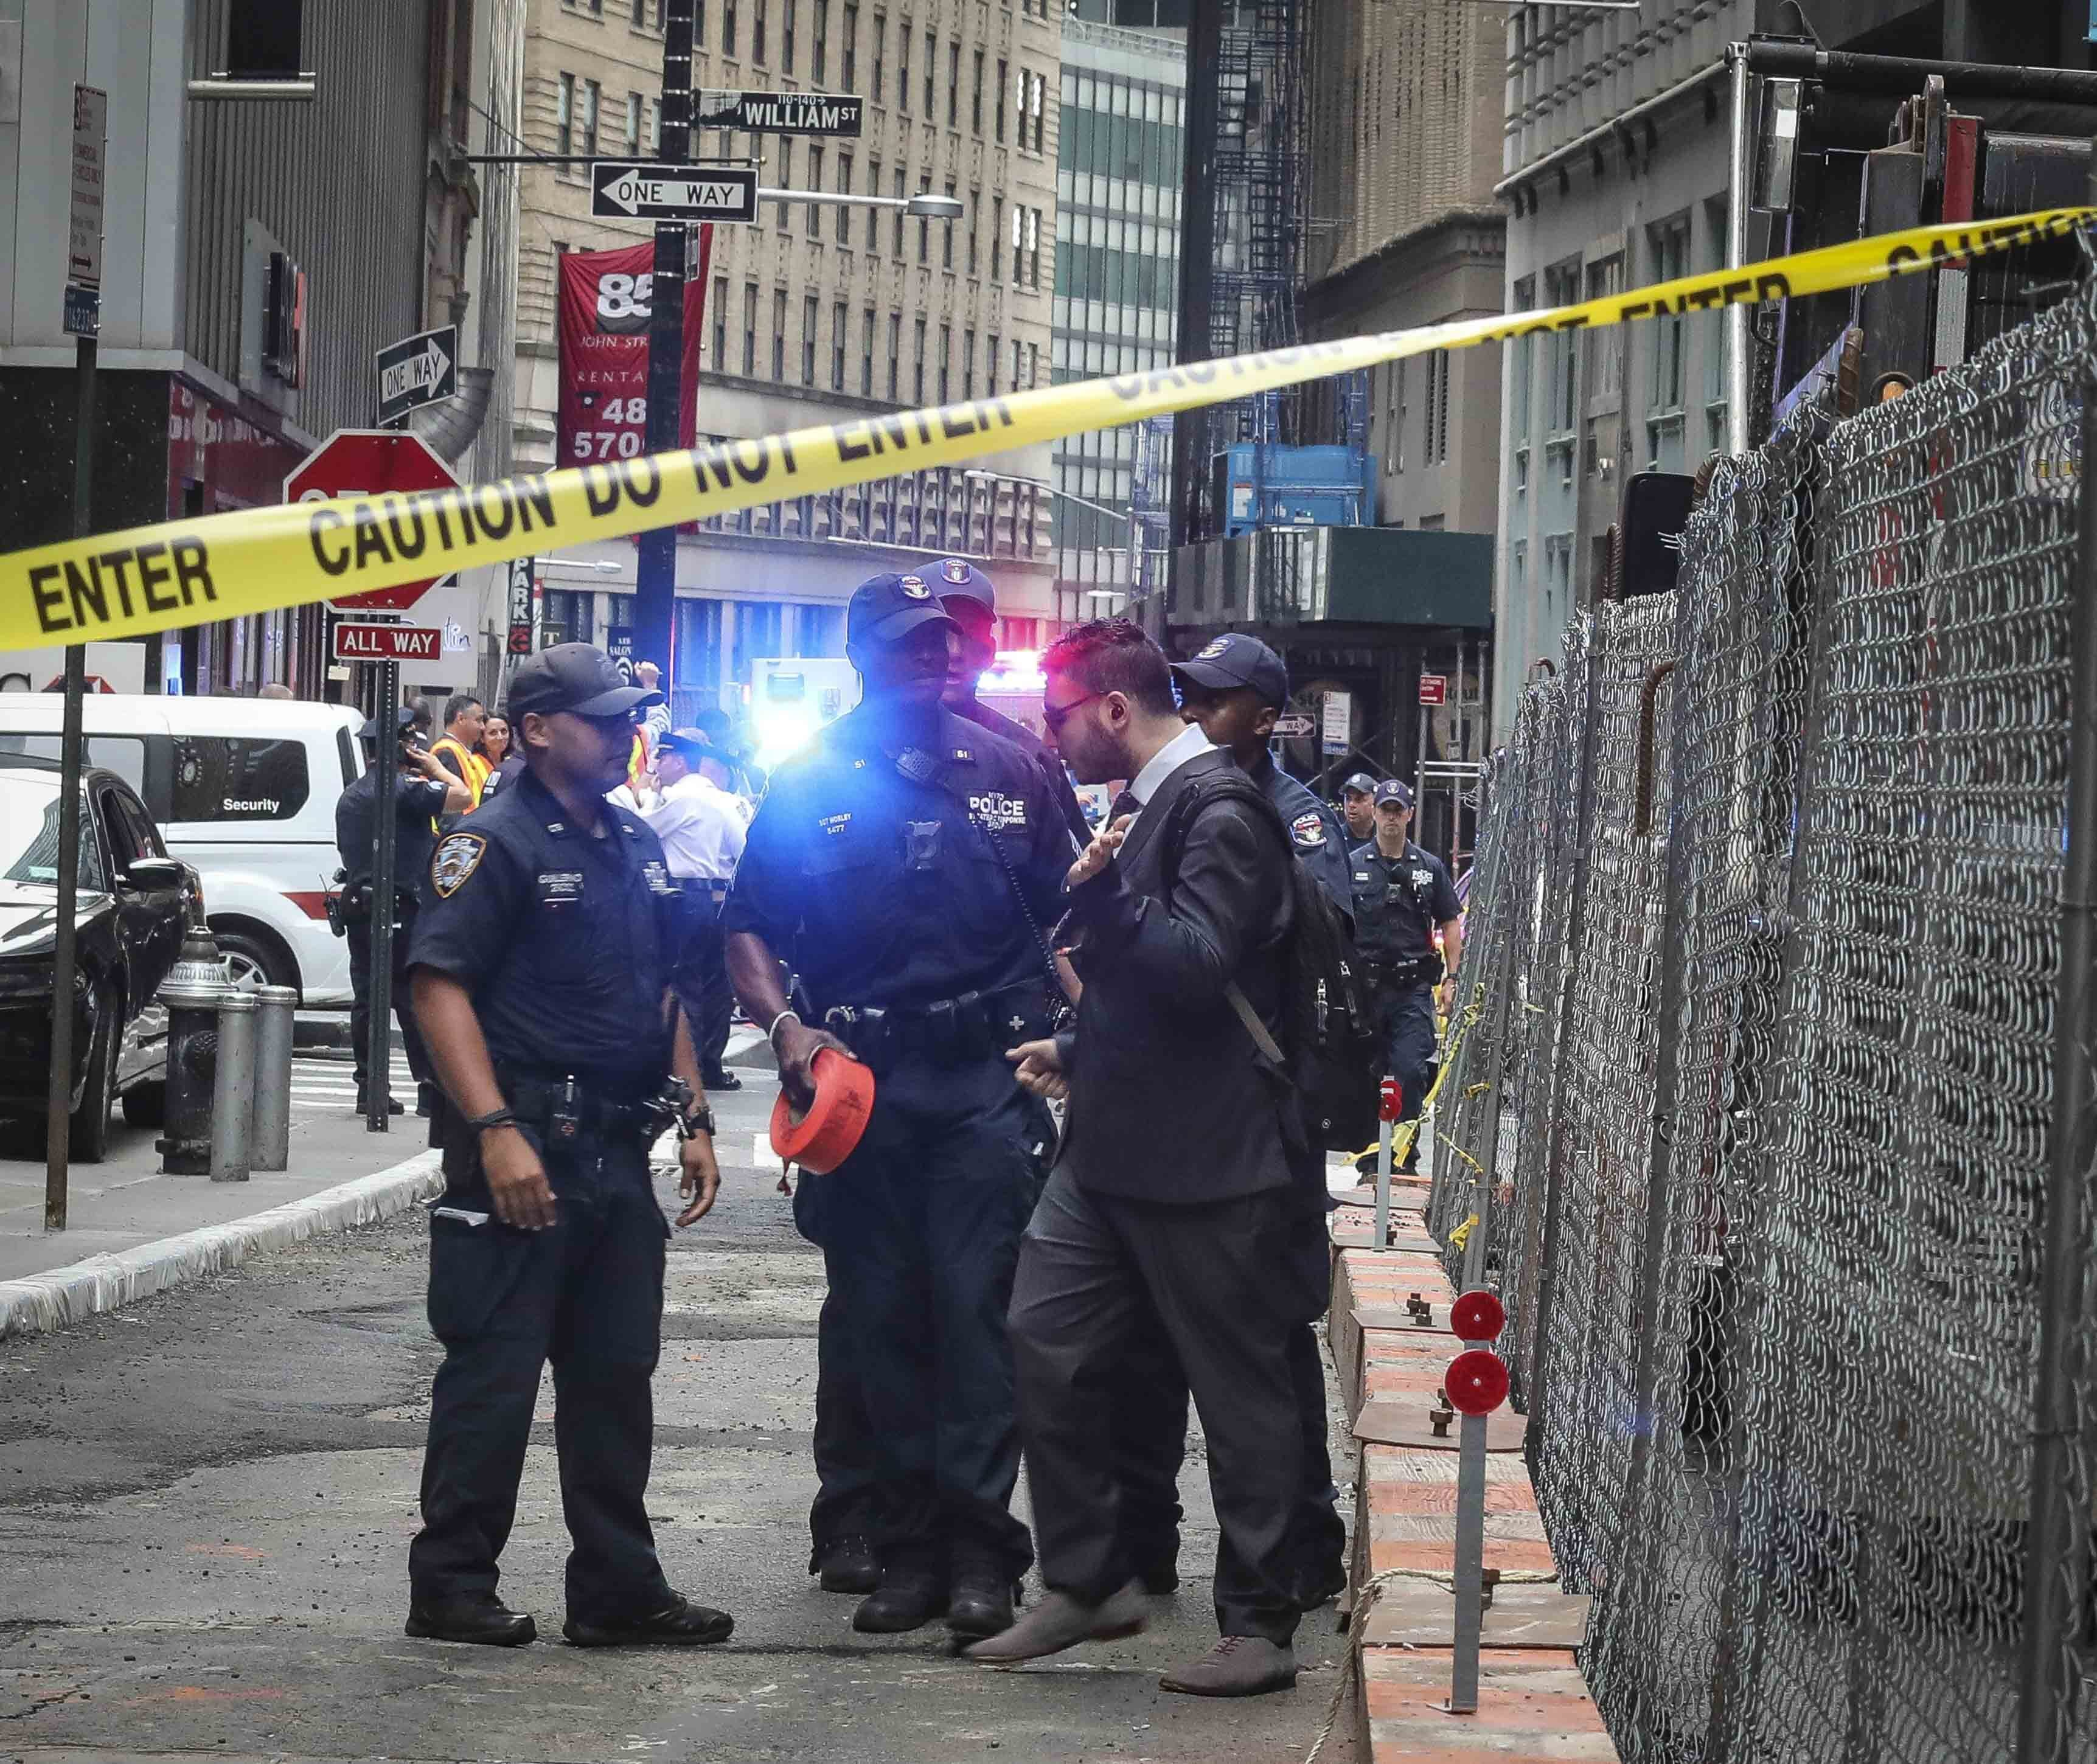 NYPD officers block an individual attempting to bypass a taped-off zone, as police seal off area in the financial district around the the Fulton Street subway hub to investigate a suspicious item, Friday Aug. 16, 2019, in New York. Two abandoned objects that appeared to be pressure cookers prompted an evacuation of a major lower Manhattan subway station during the morning commute Friday before police determined they were not explosives, and authorities were investigating whether they were deliberately positioned to spark fear. (AP Photo/Bebeto Matthews)